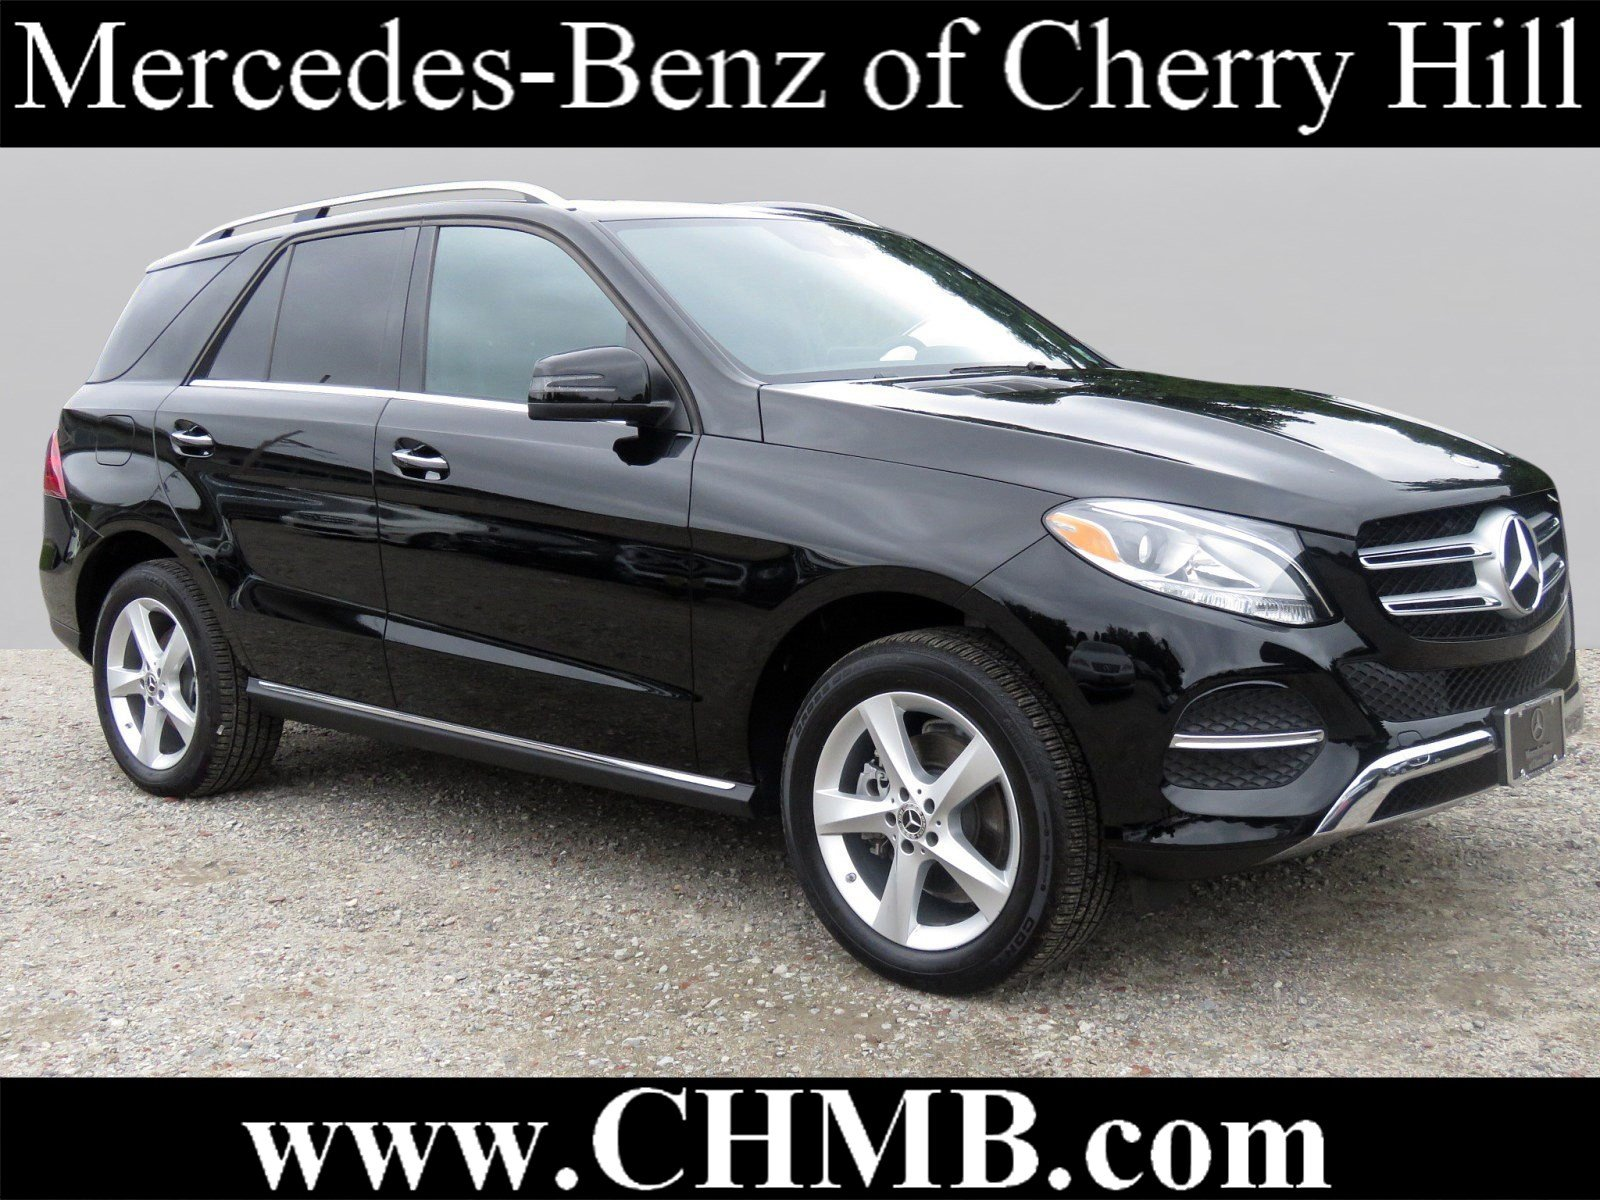 Pre Owned 2018 Mercedes Benz GLE GLE 350 SUV in Cherry Hill LM0075